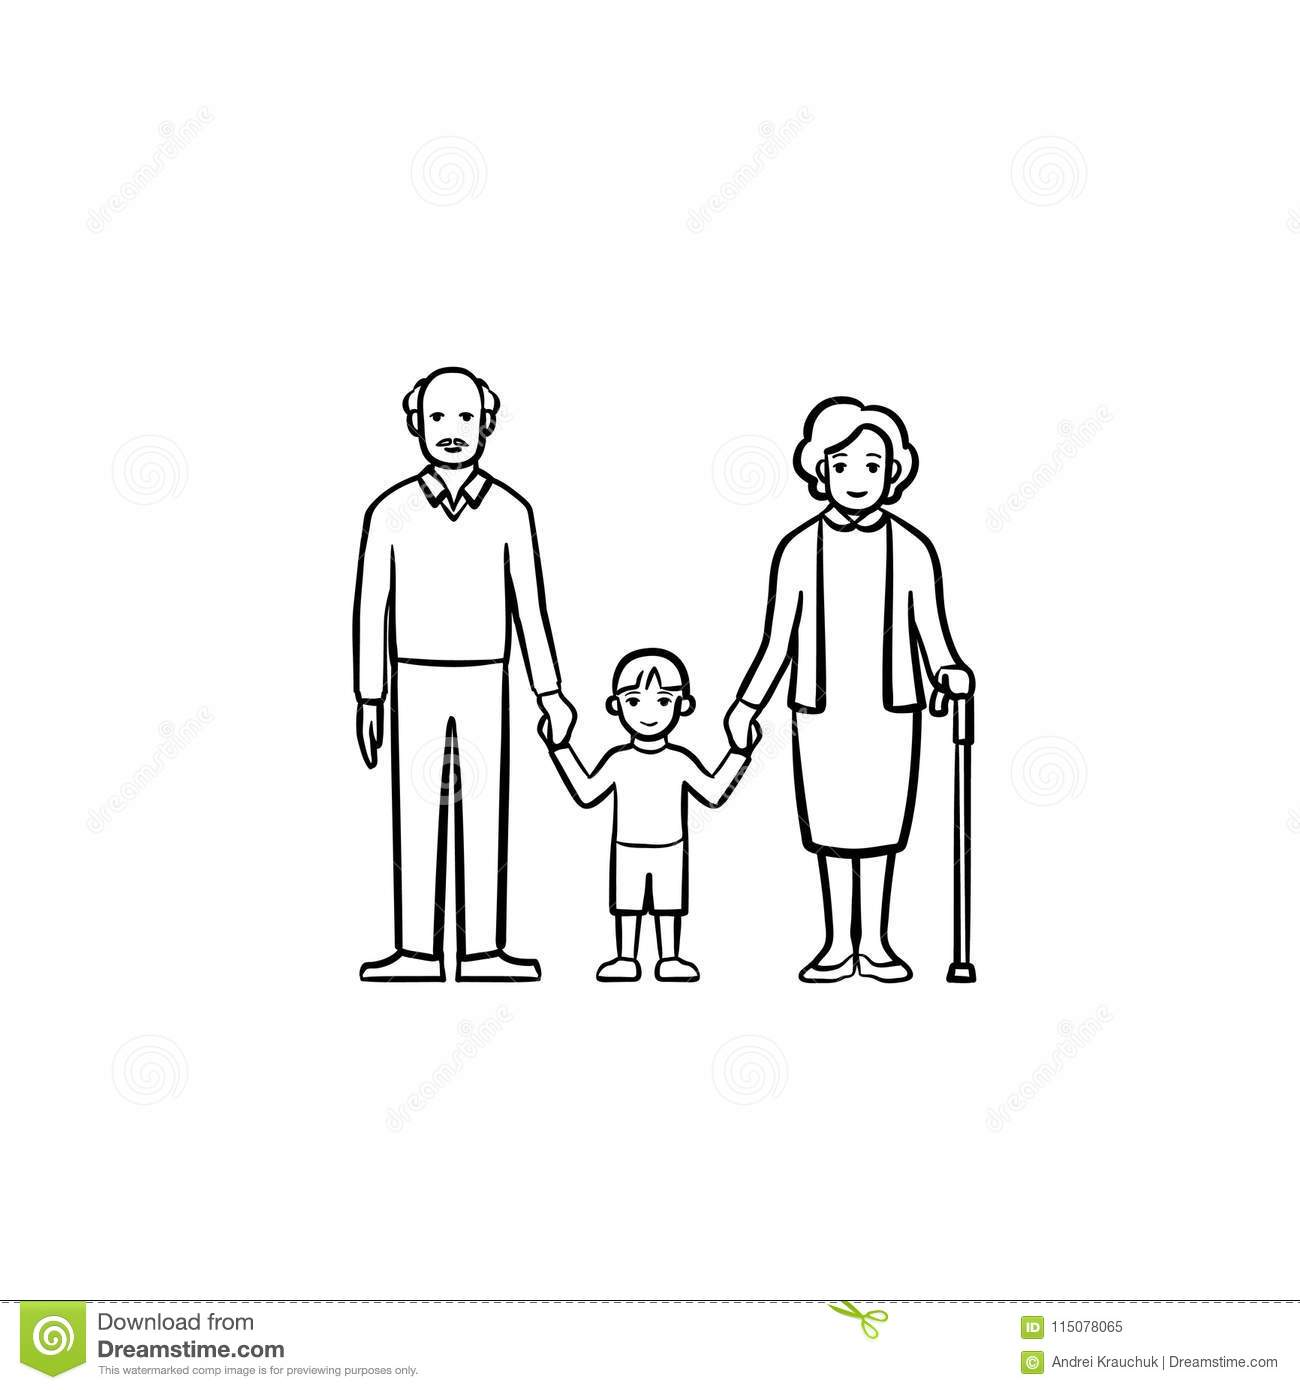 Grandparents and grandson hand drawn sketch icon.